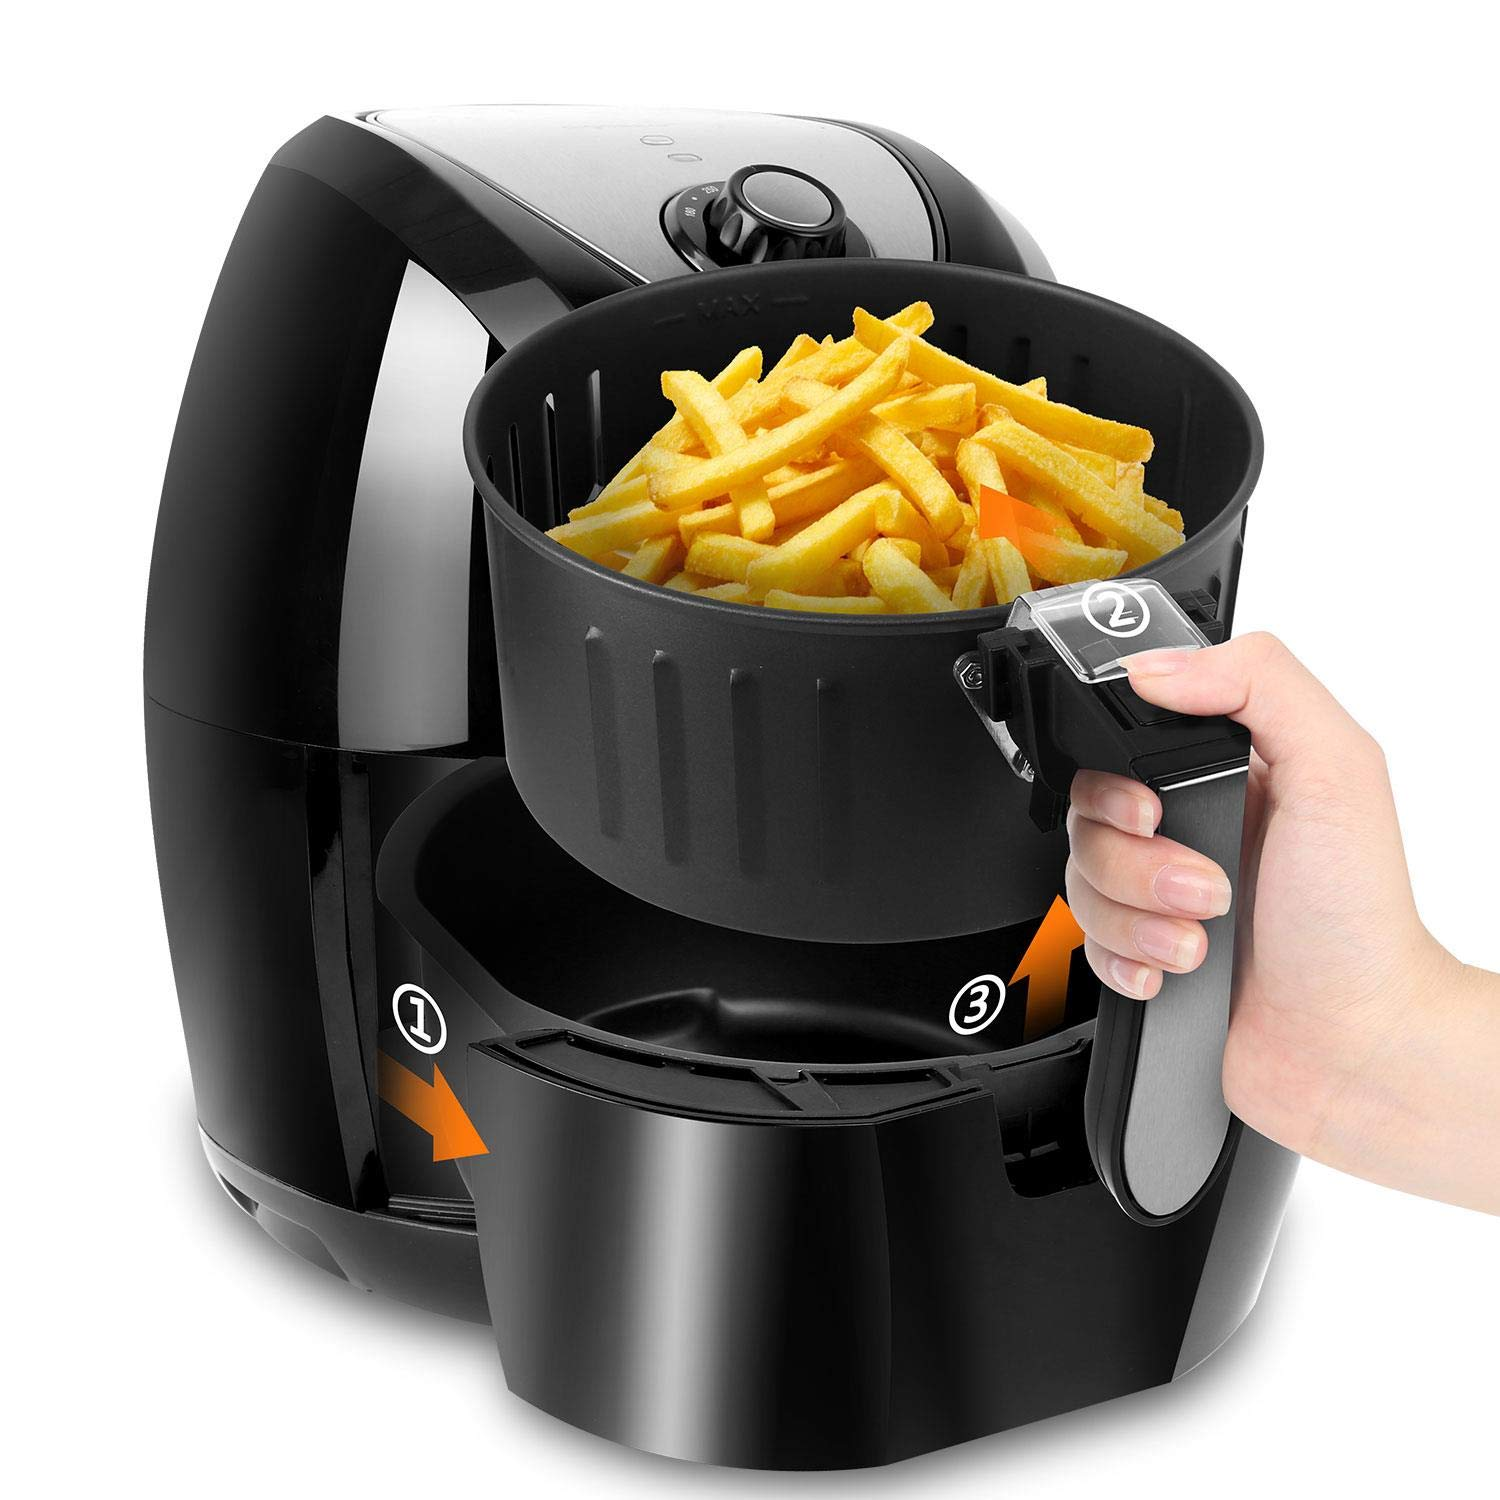 Aigostar Dragon Pro Air Fryer, 3.4Qt Electric Hot Air Fryers Oven Oilless Cooker with Detachable Non-stick Basket & Automatic Timer & Temperature Control for Fast Healthier Fried Food, 1400W by Aigostar (Image #3)